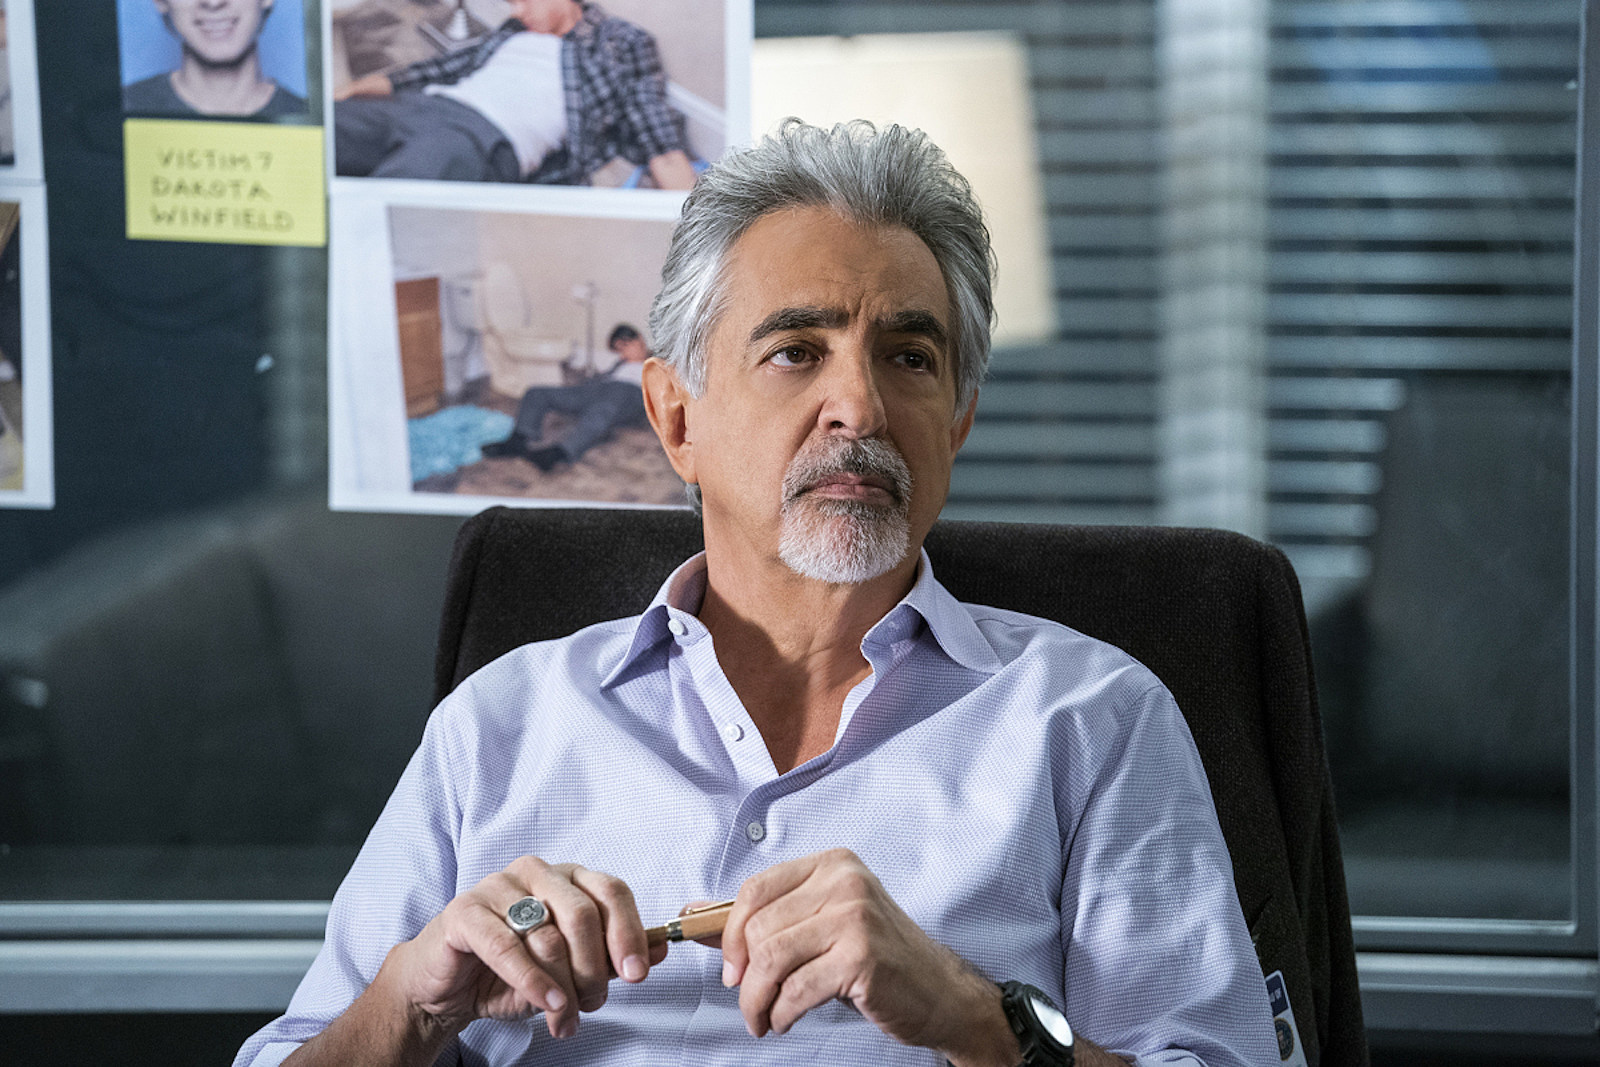 Criminal Minds' Will Finally End After Its 15th Season